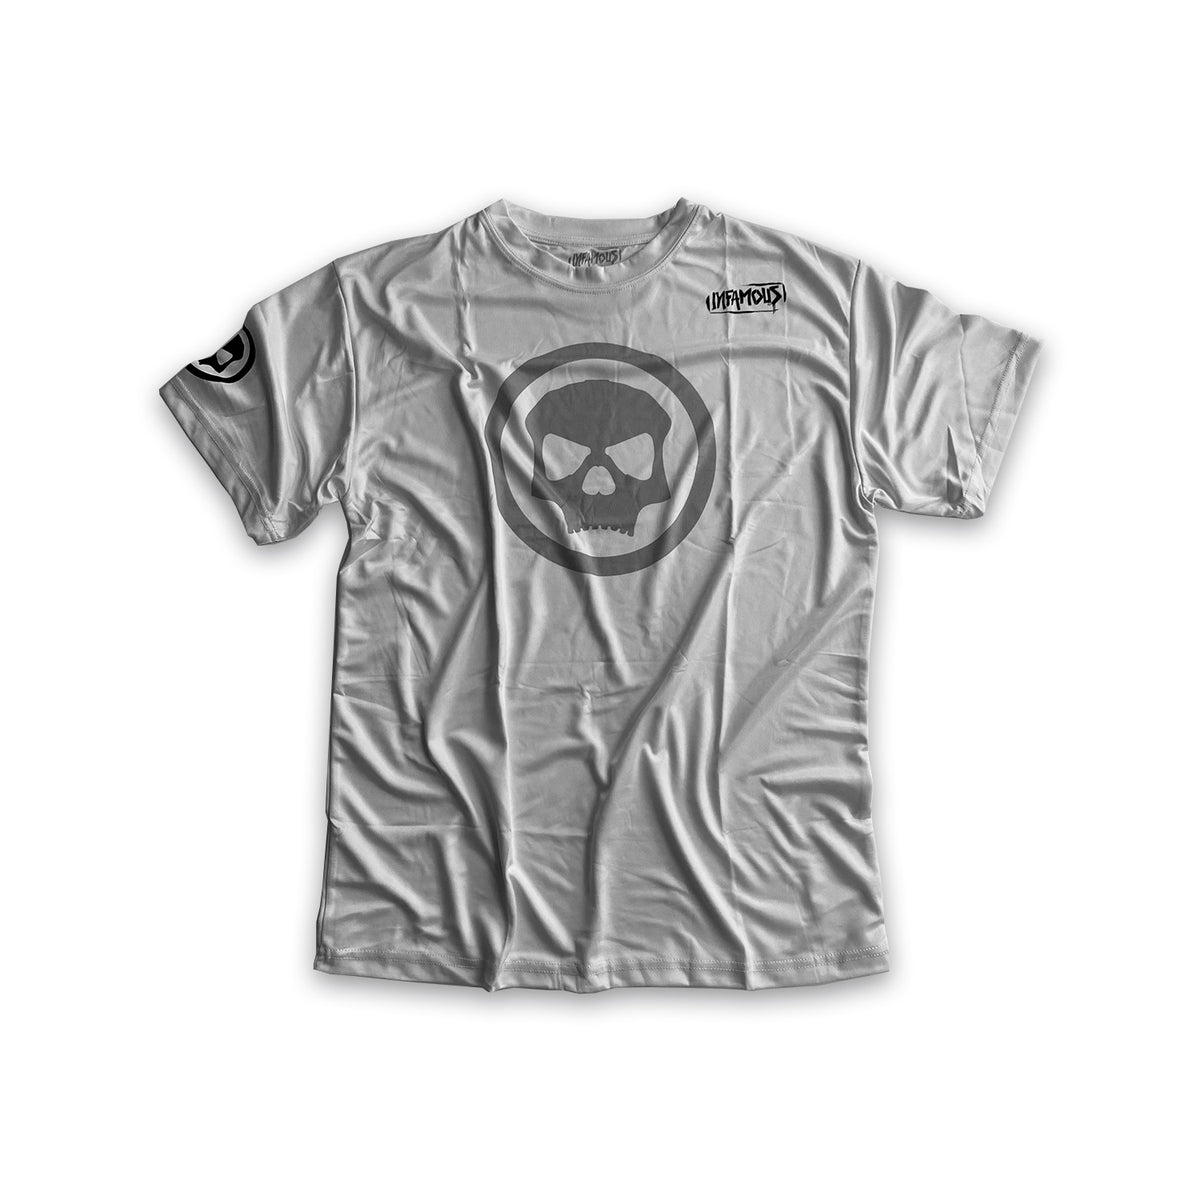 Infamous DryFit Tech T-Shirt - Loyalty White/Grey